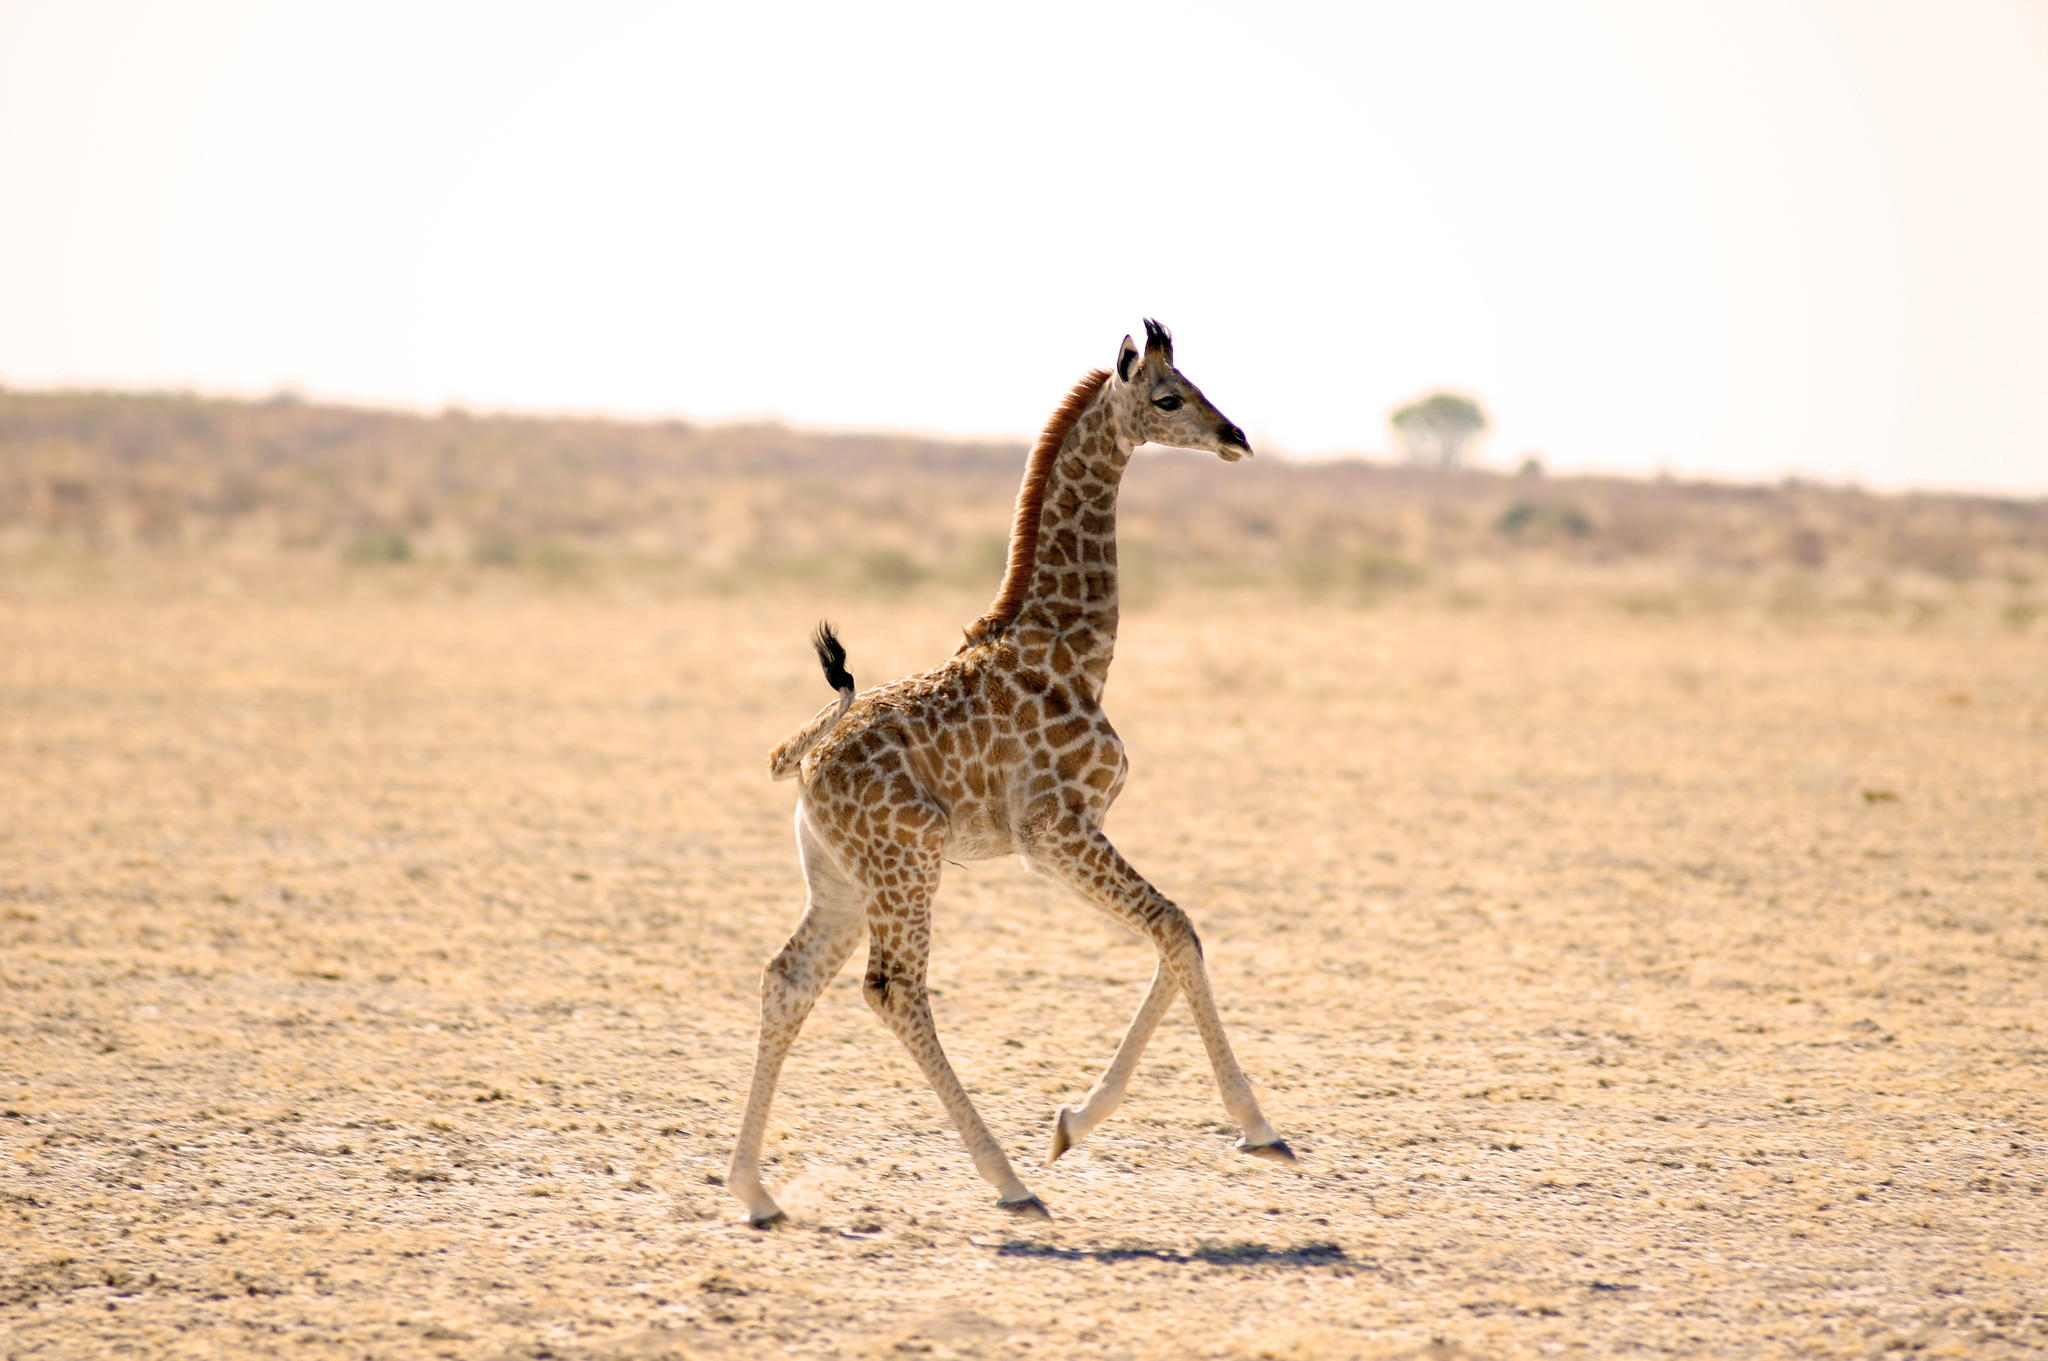 25 Best Photos of Cute Baby Giraffes